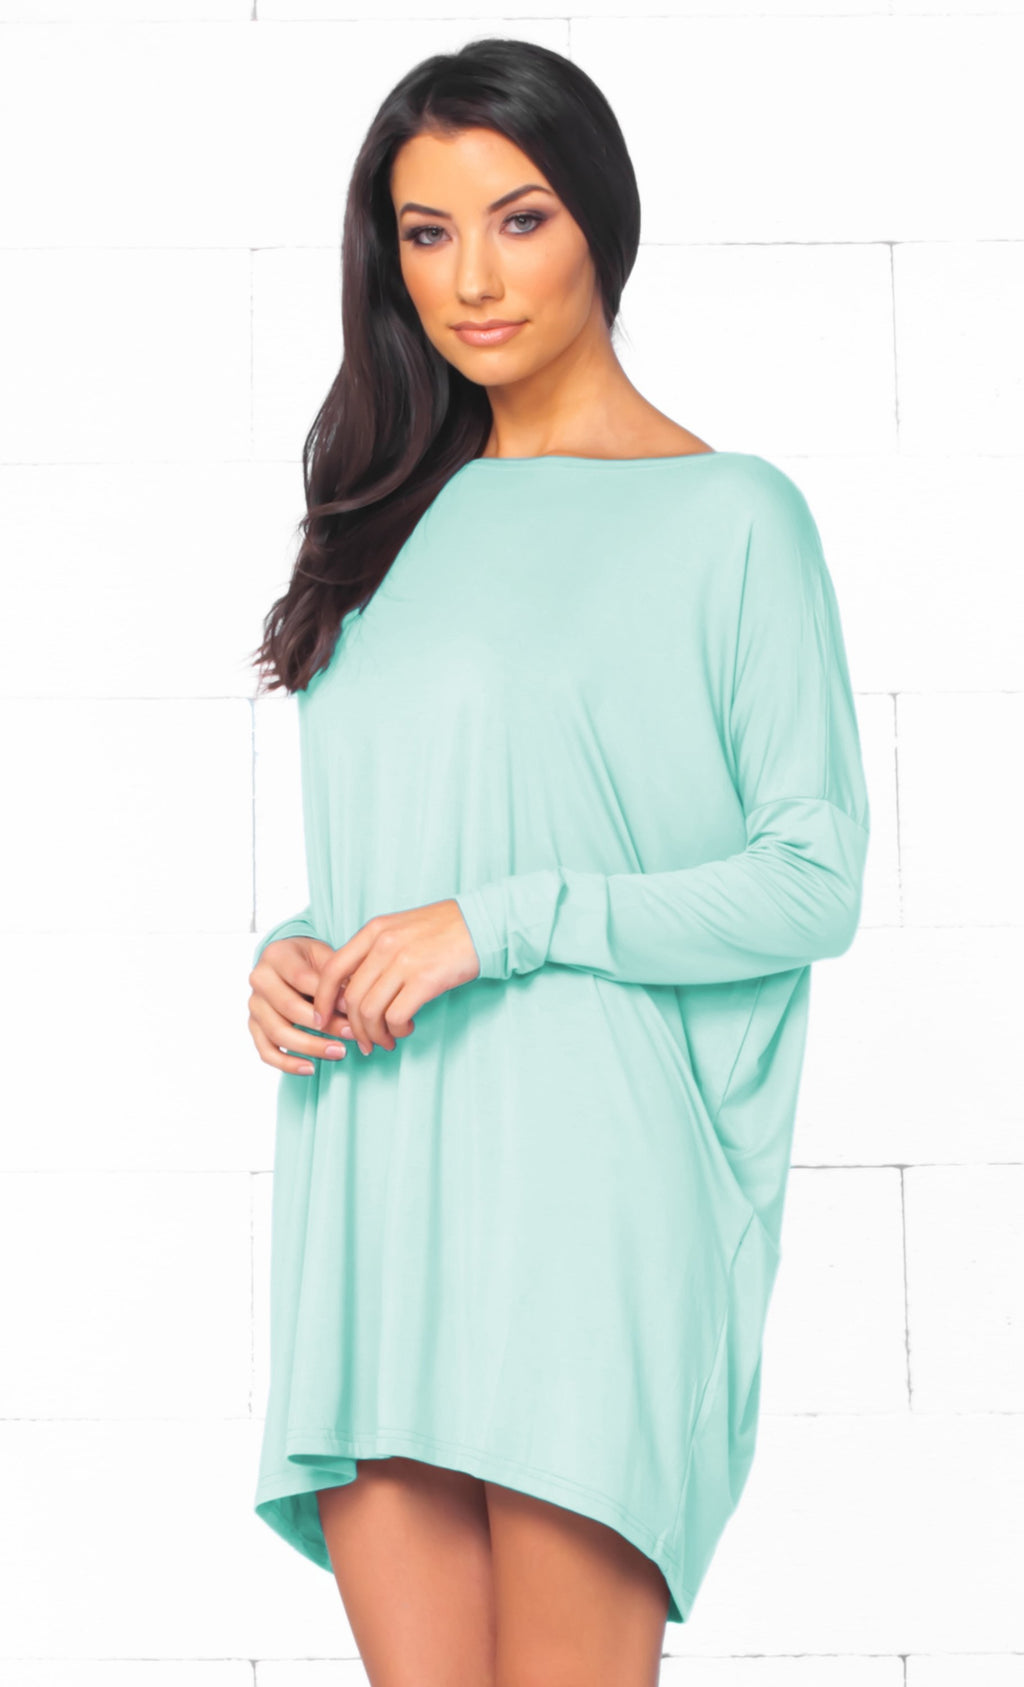 Piko 1988 Mint Green Long Sleeve Scoop Neck Piko Bamboo Oversized Basic Tunic Tee Shirt Mini Dress